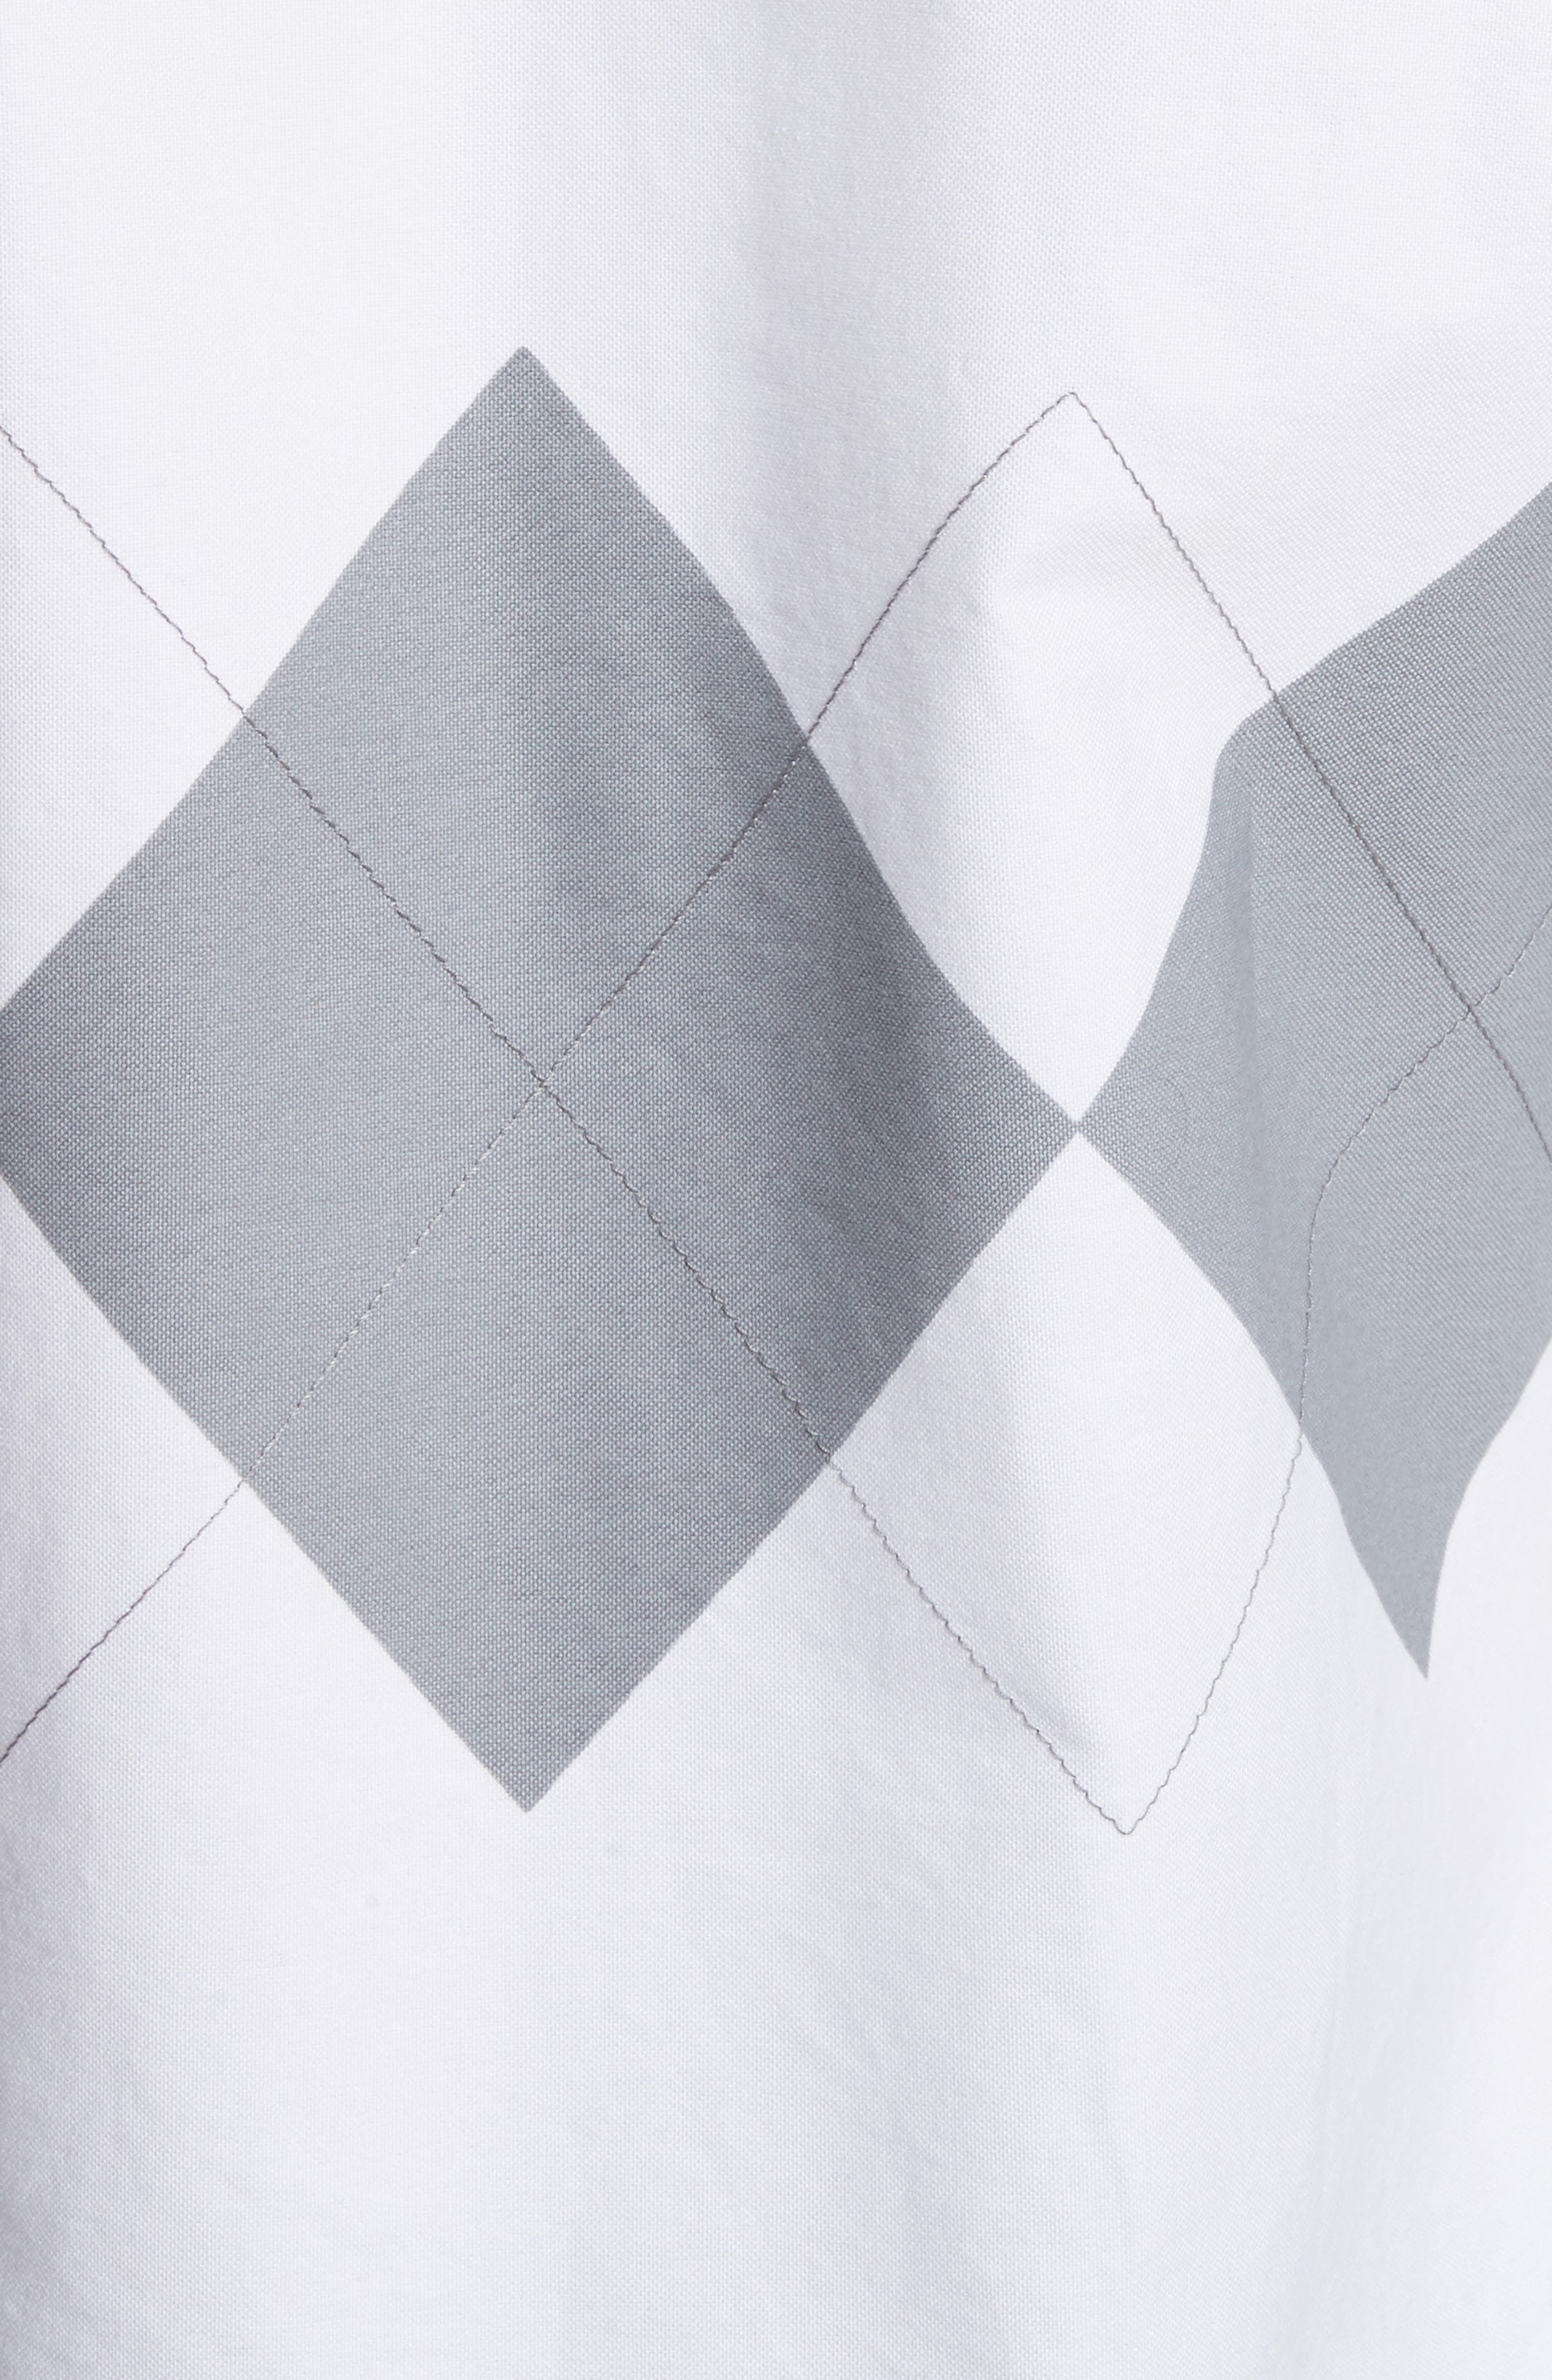 Argyle Print Woven Shirt,                             Alternate thumbnail 5, color,                             White